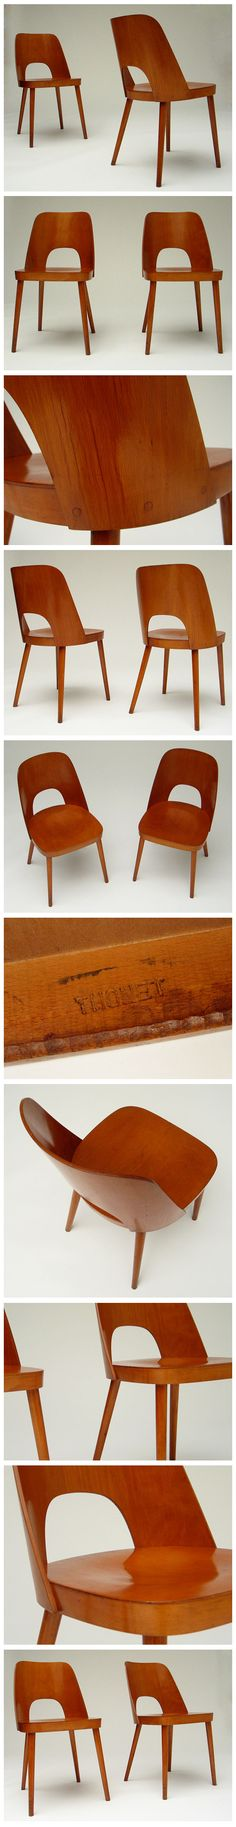 Chair by Thonet and Cherner for Plycraft